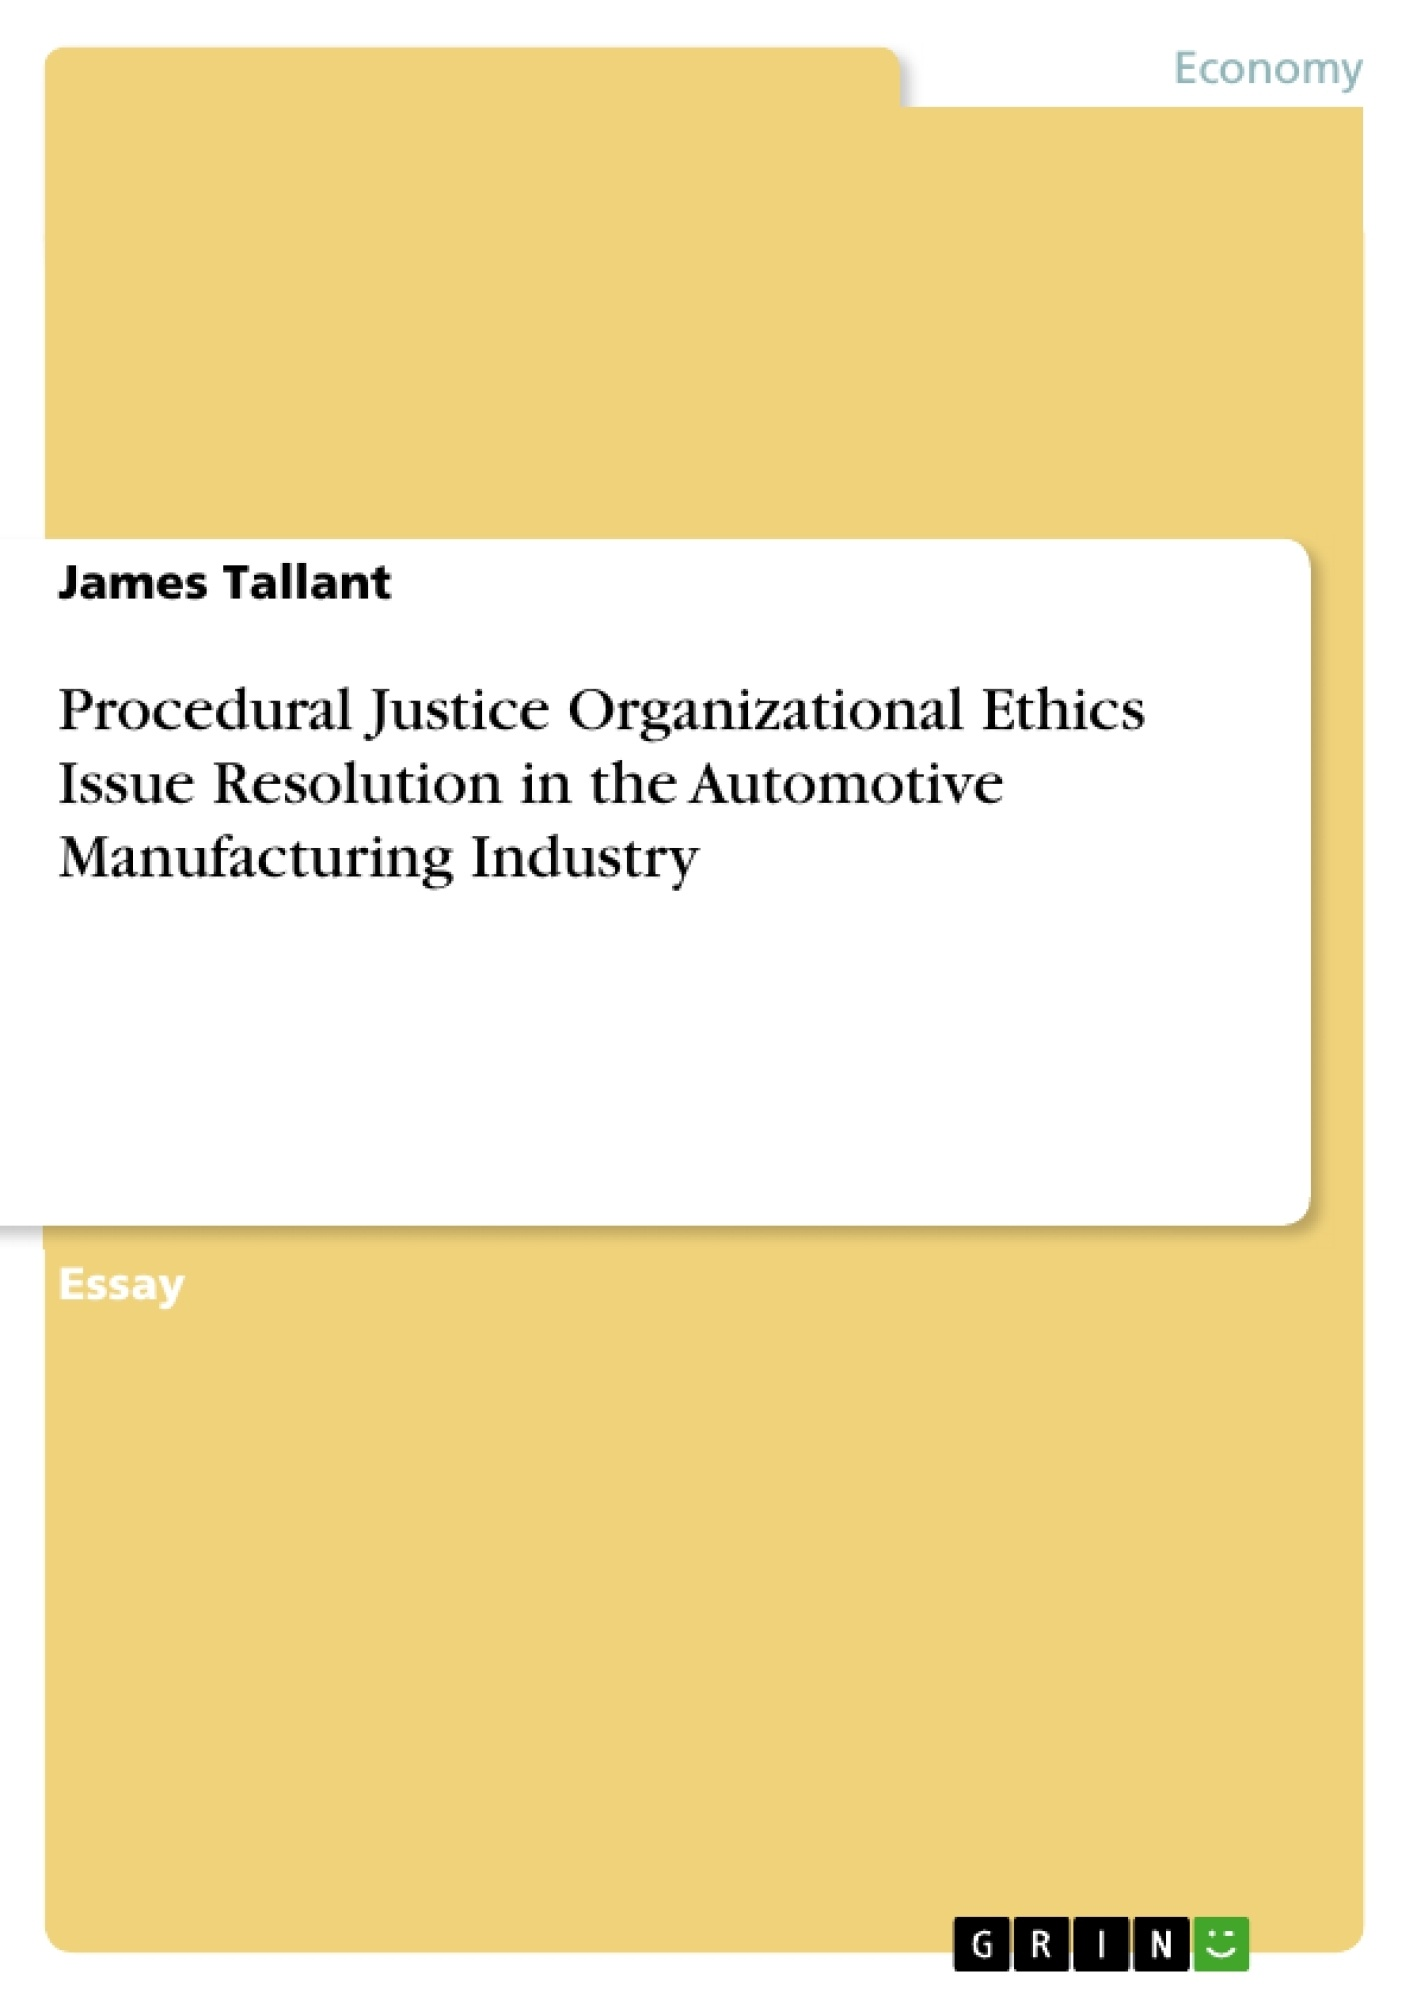 Title: Procedural Justice  Organizational Ethics Issue Resolution in the Automotive Manufacturing Industry